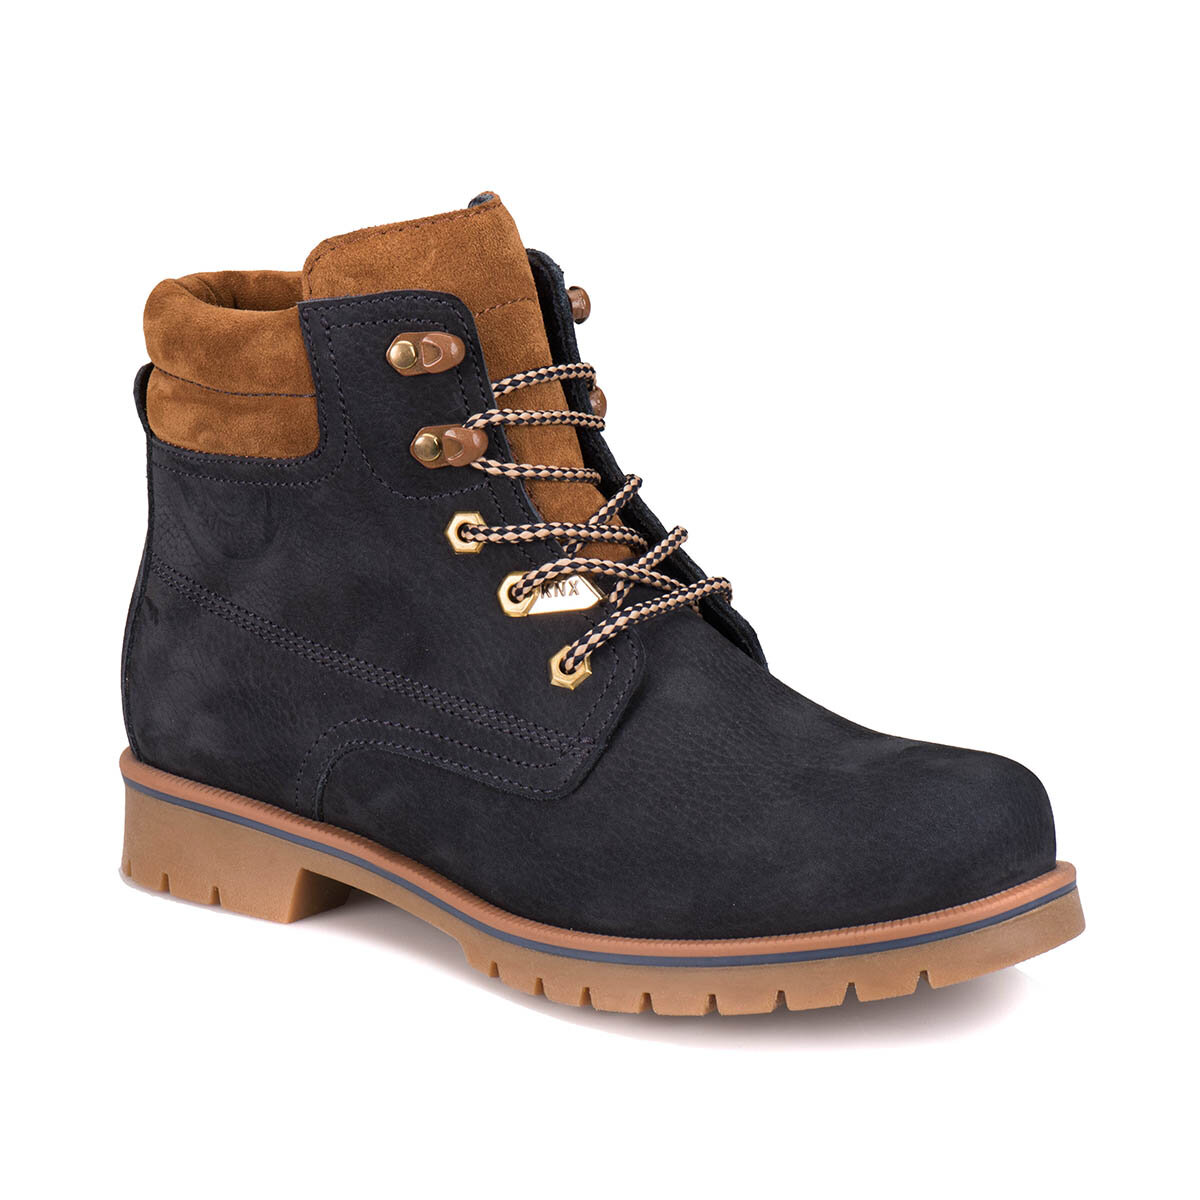 FLO A1305072 Navy Blue Men 'S Boots KINETIX